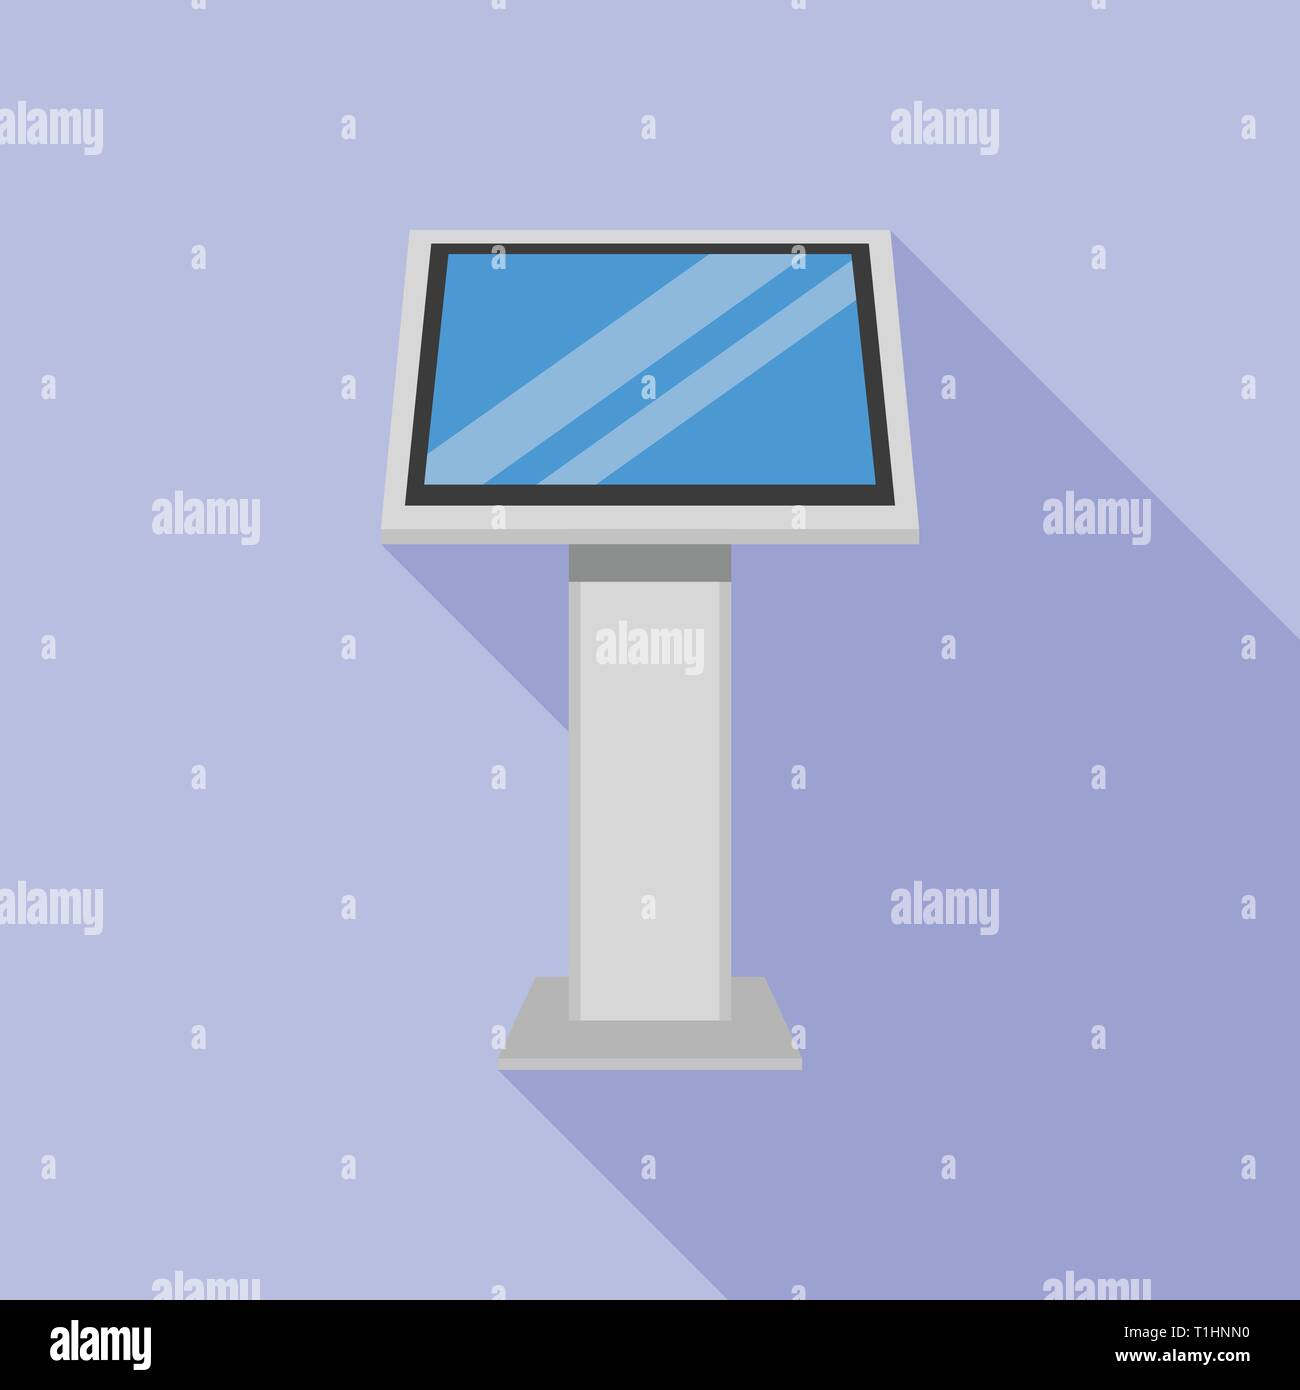 Exhibition Stall Icon : Exhibition stand icons free exhibition stand icons download